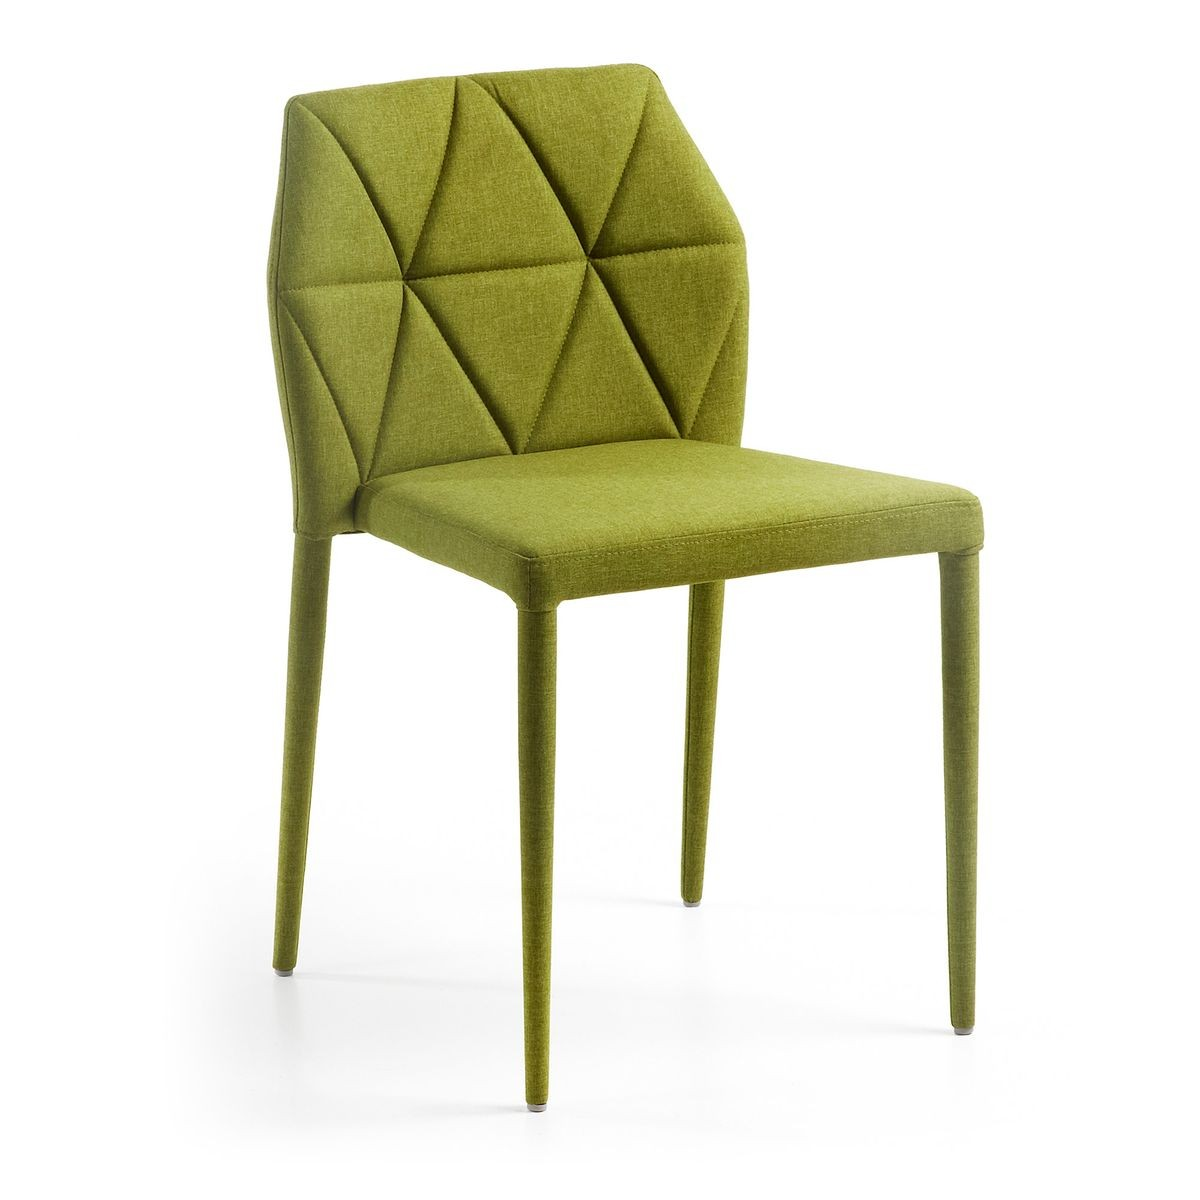 Chaise Graphic Vert Taille Taille Unique Chaise Design Pas Cher Chaise Design Chaise Verte